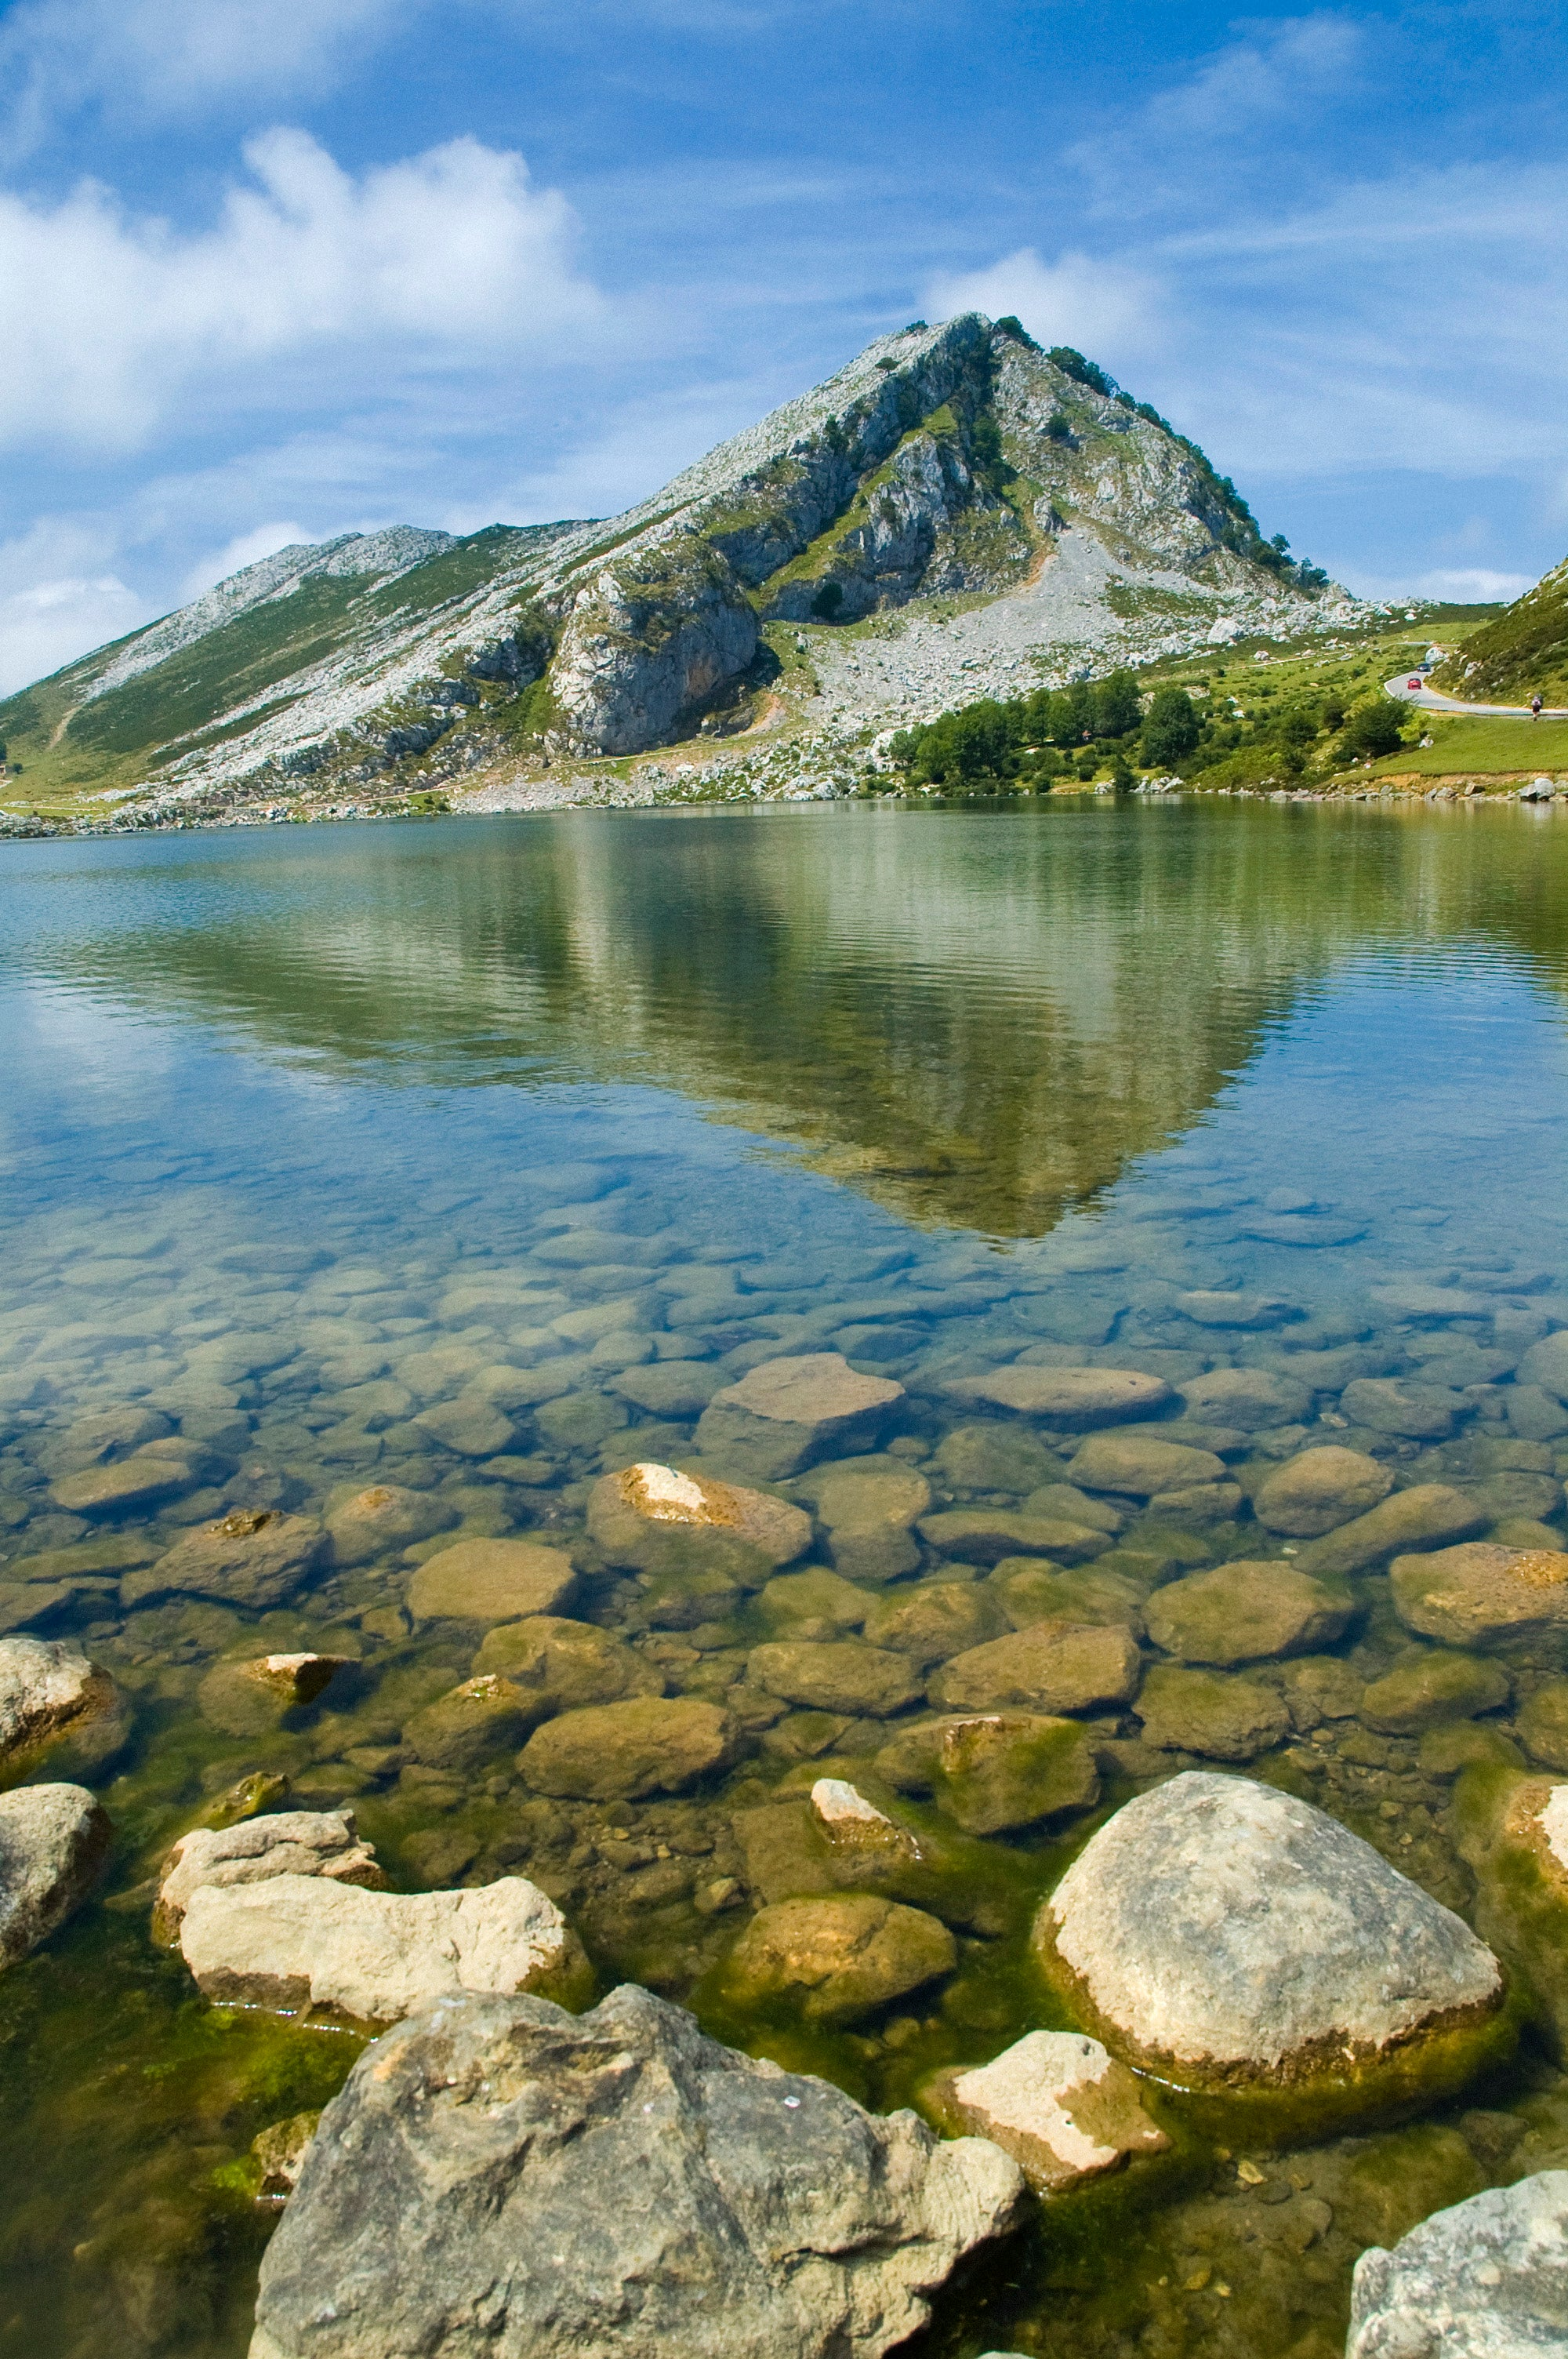 Rock in The Lakes of Covadonga - Enol and Ercina lakes